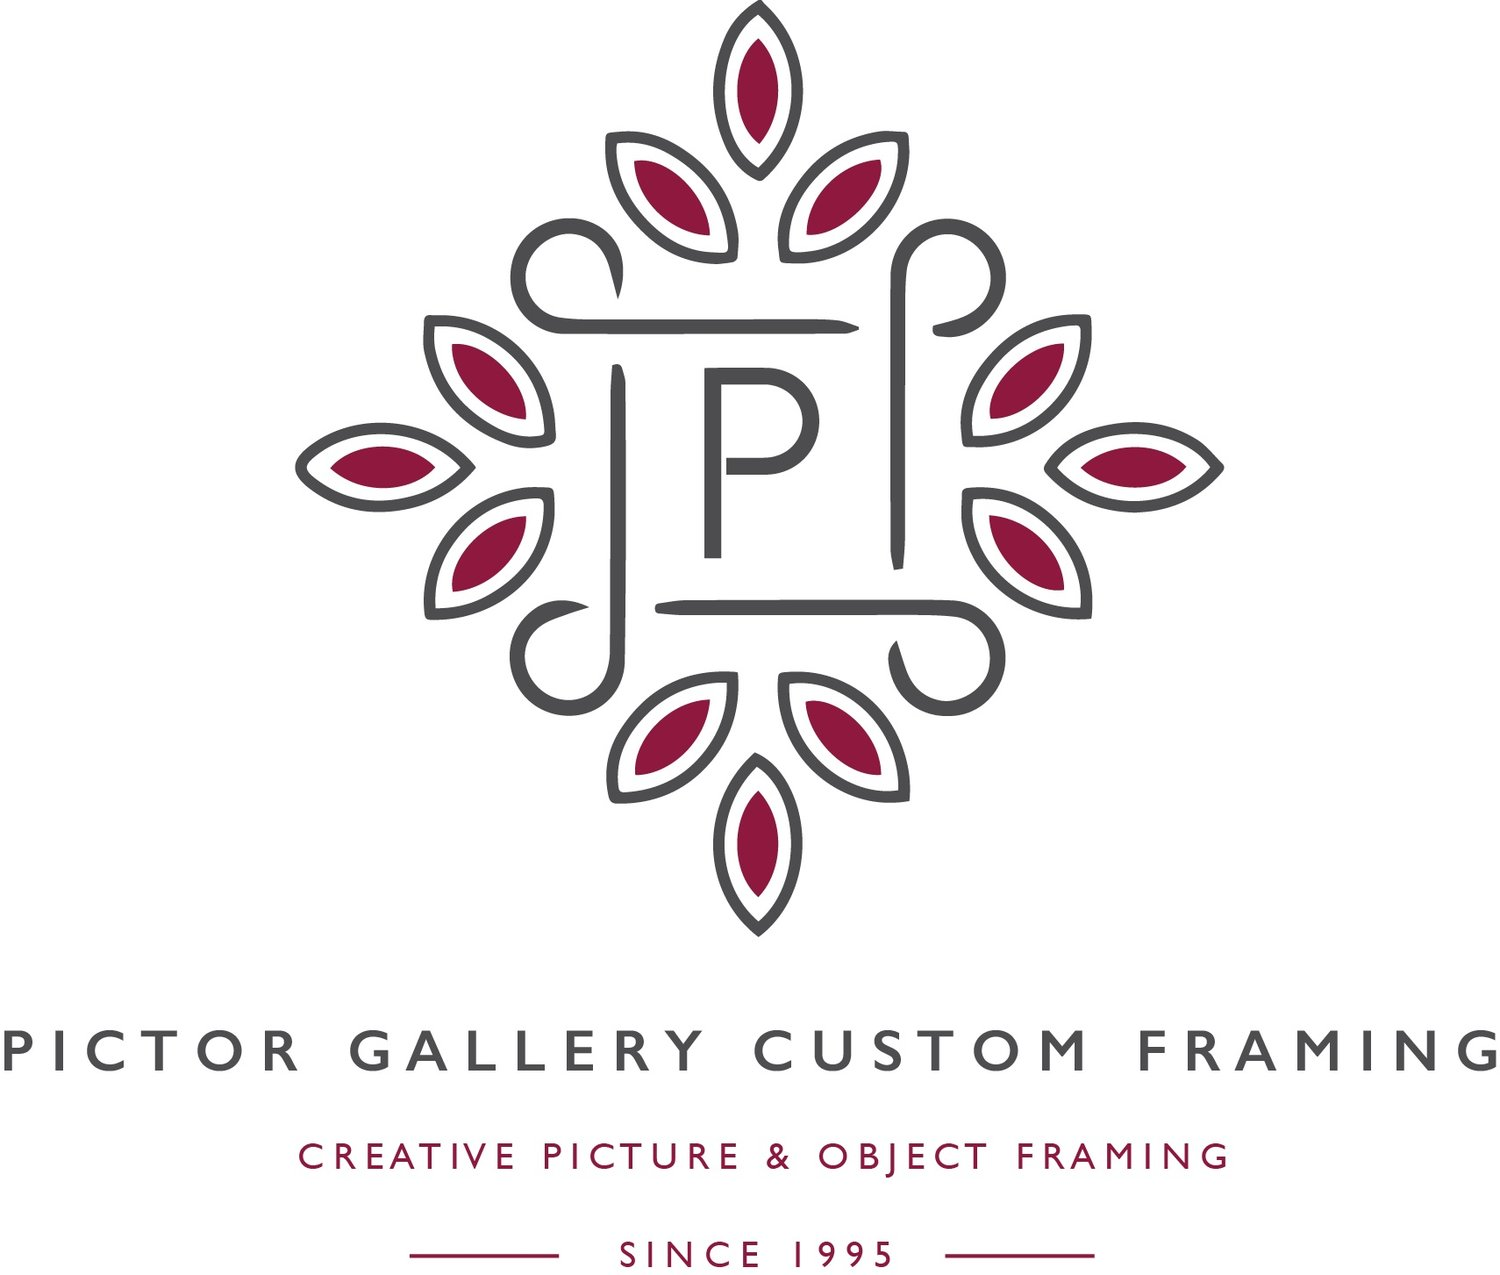 Pictor Gallery